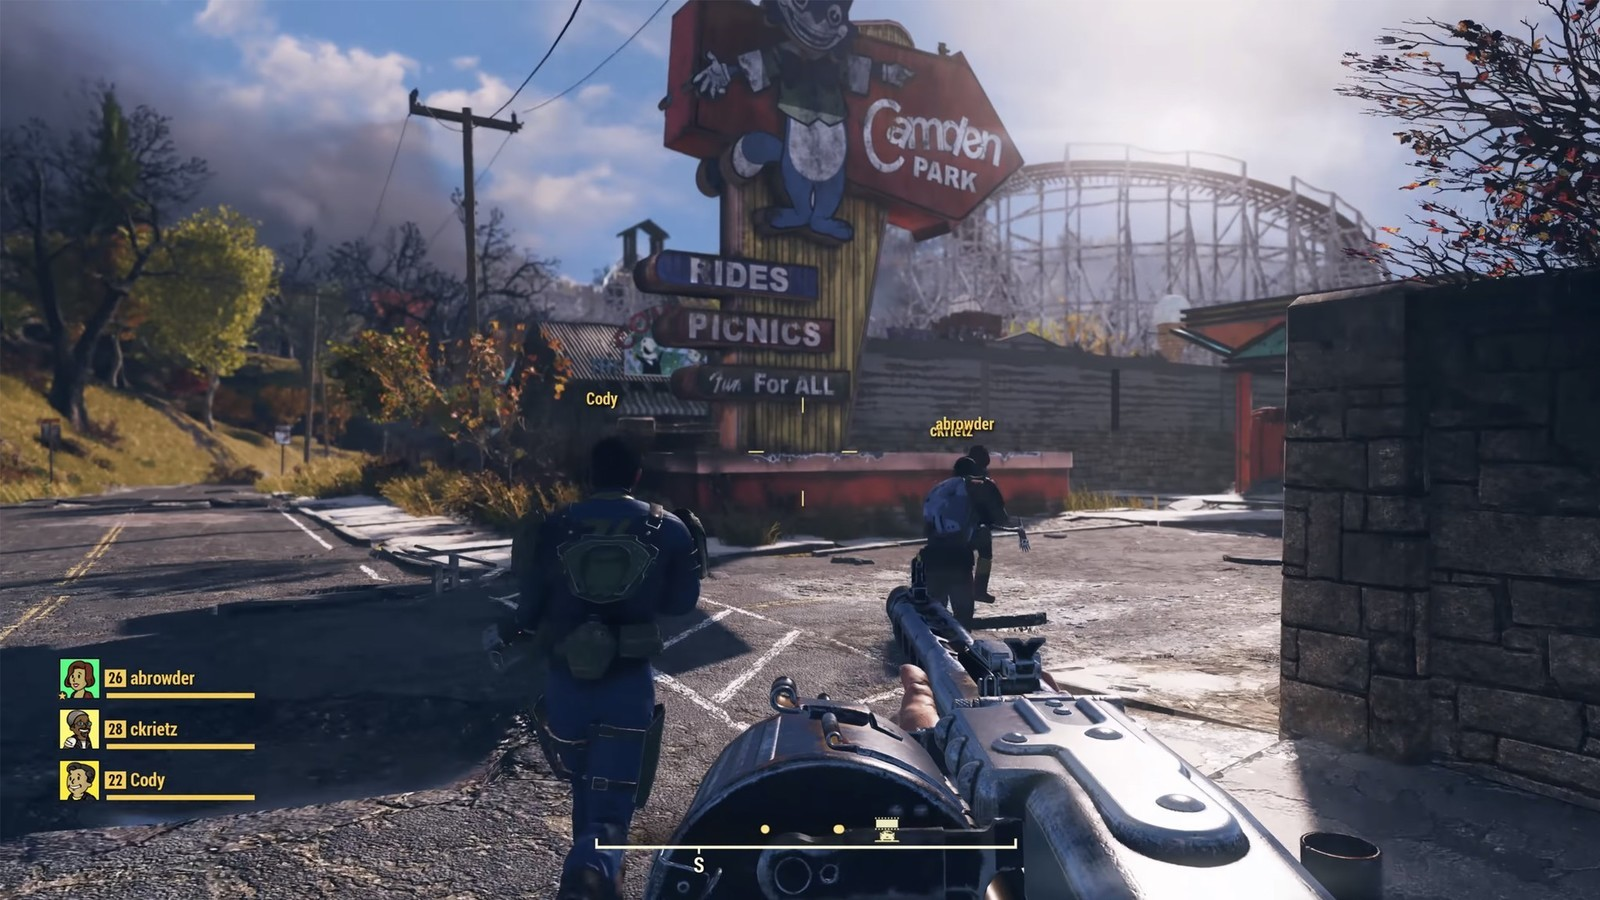 Fallout 76 weapons: greatest weapons, methods to craft weapons